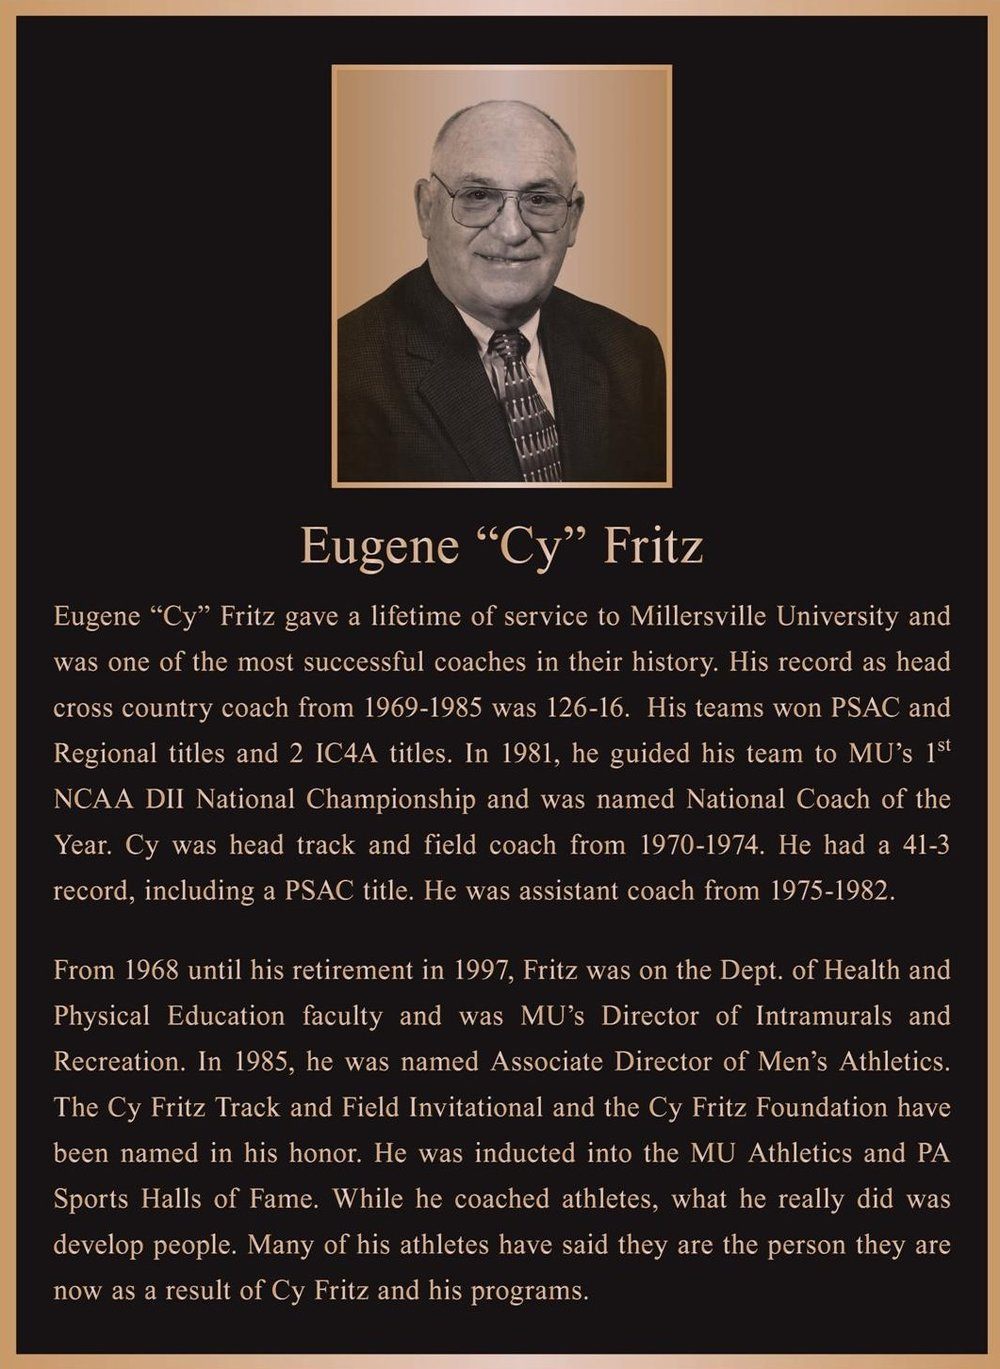 The permanent bronze plaque that honors Cy Fritz.  Click on the plaque to enlarge it.